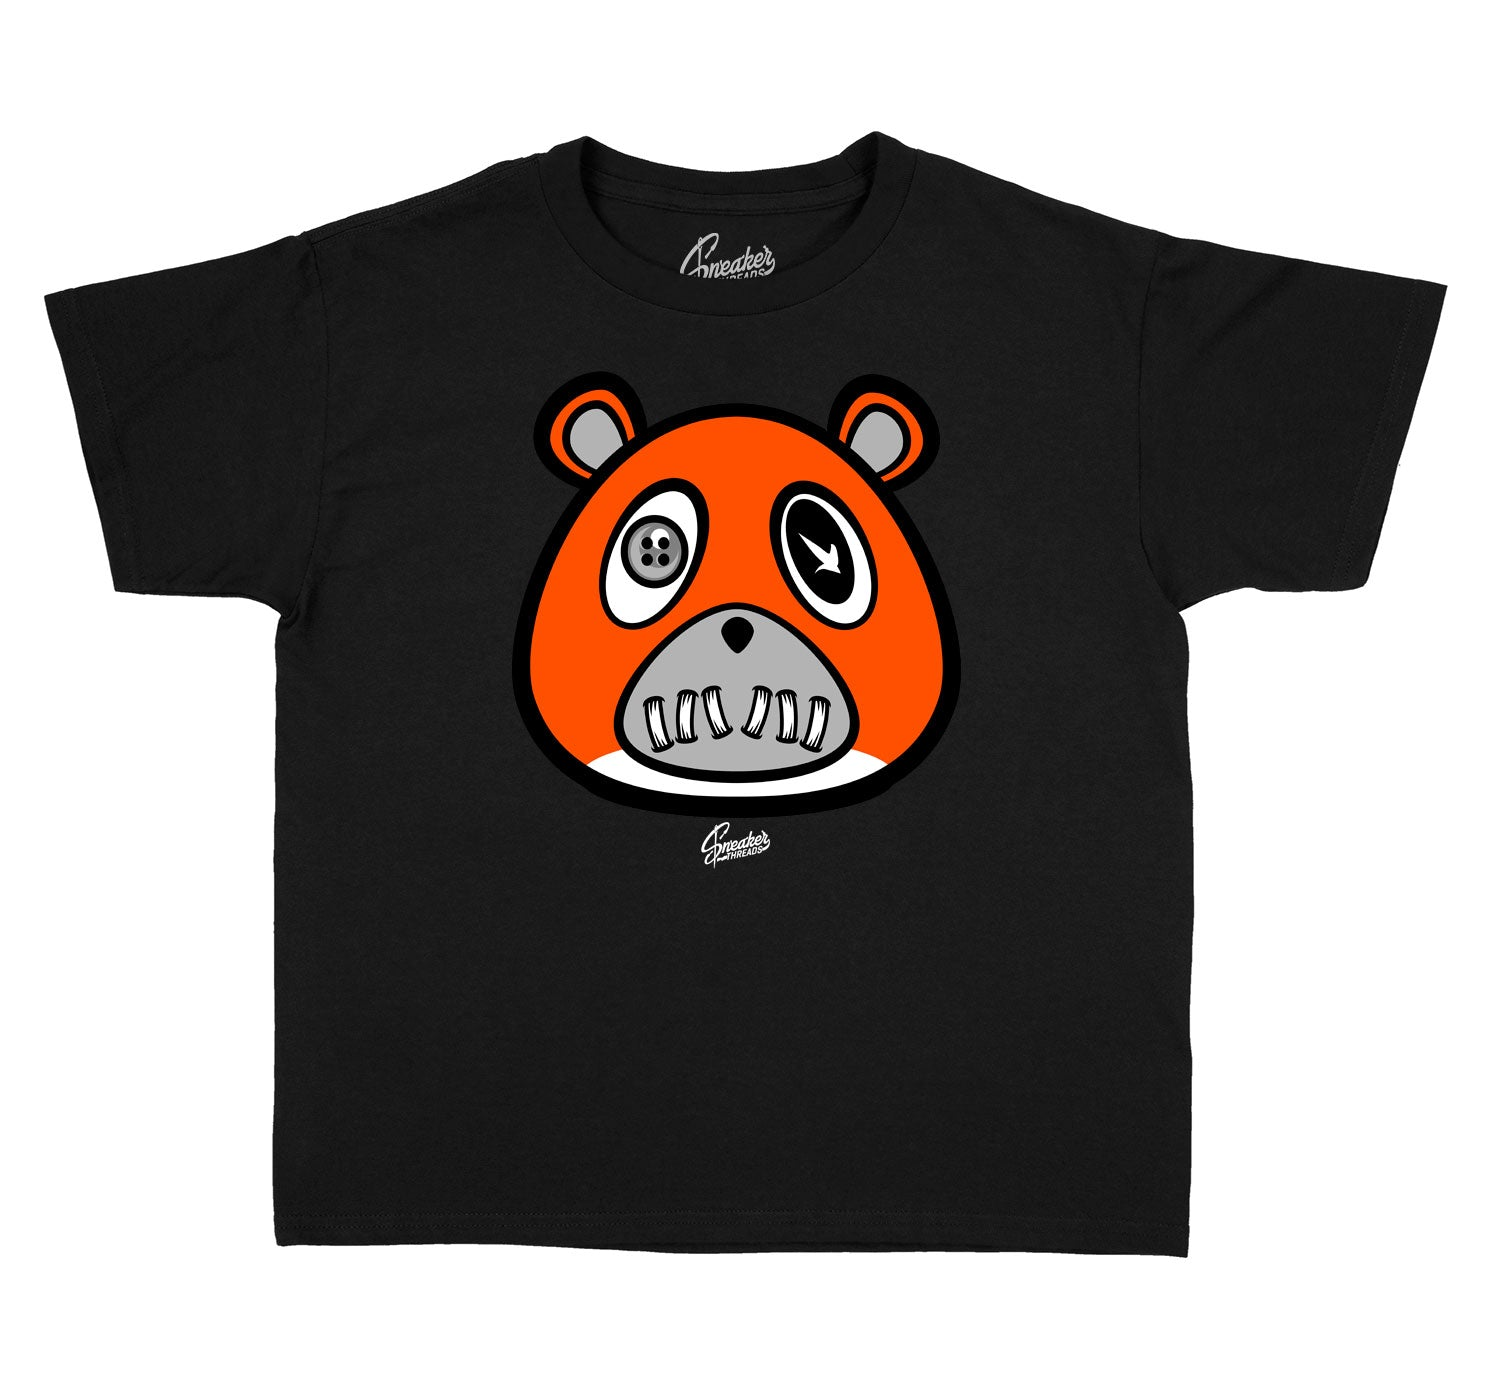 Kids Starfish Shirt - ST Bear - Black